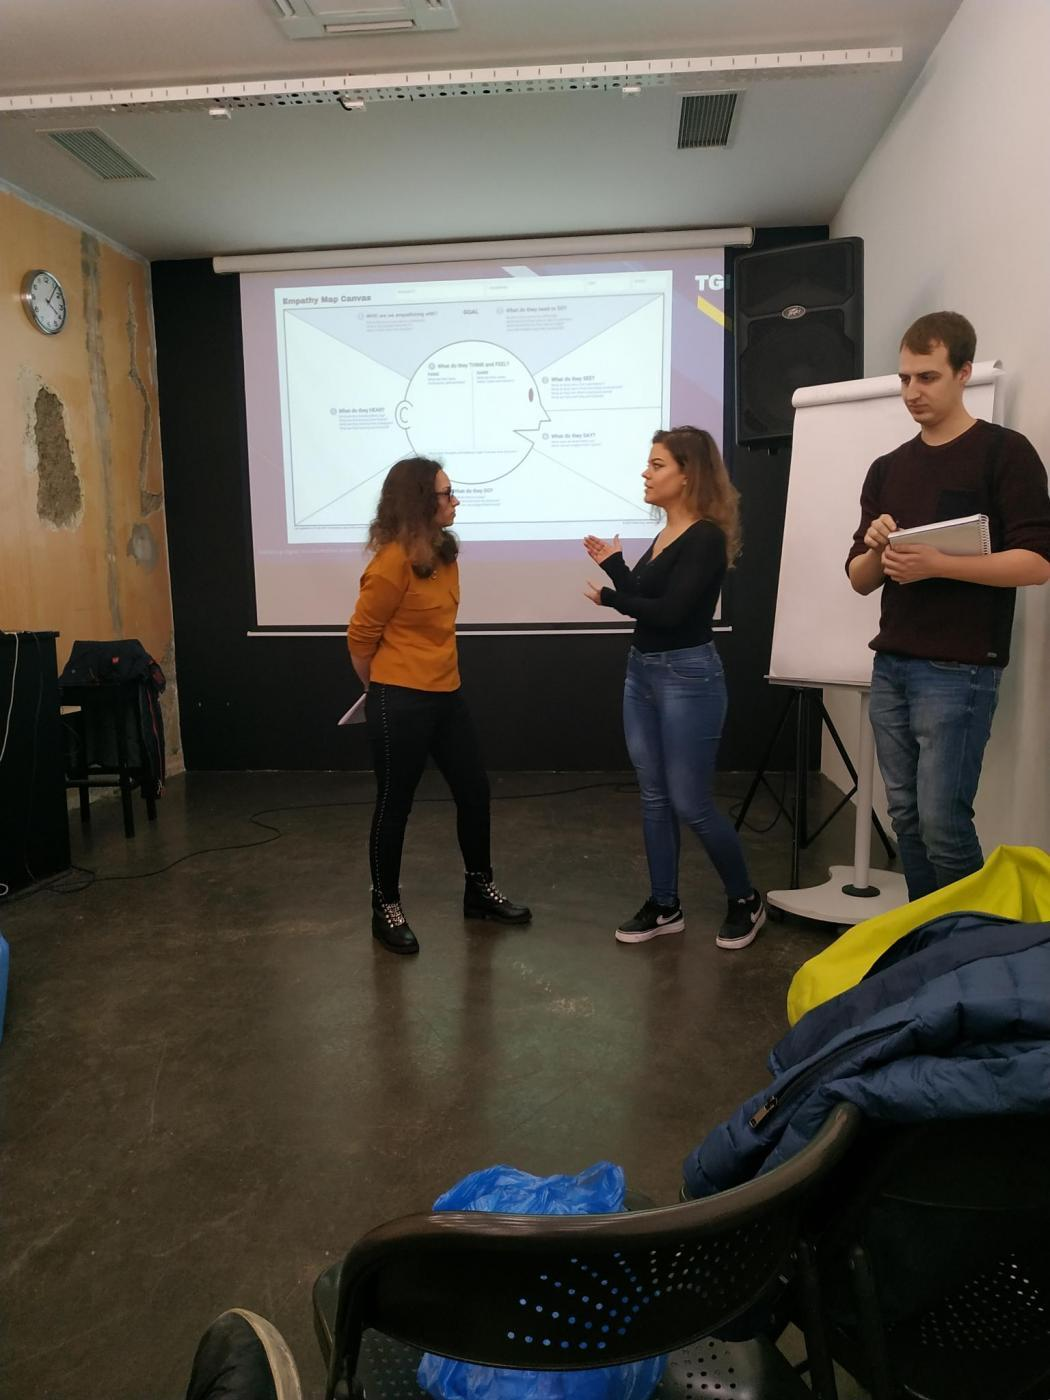 Digital transformation: TeleGroup held its first Masterclass to the